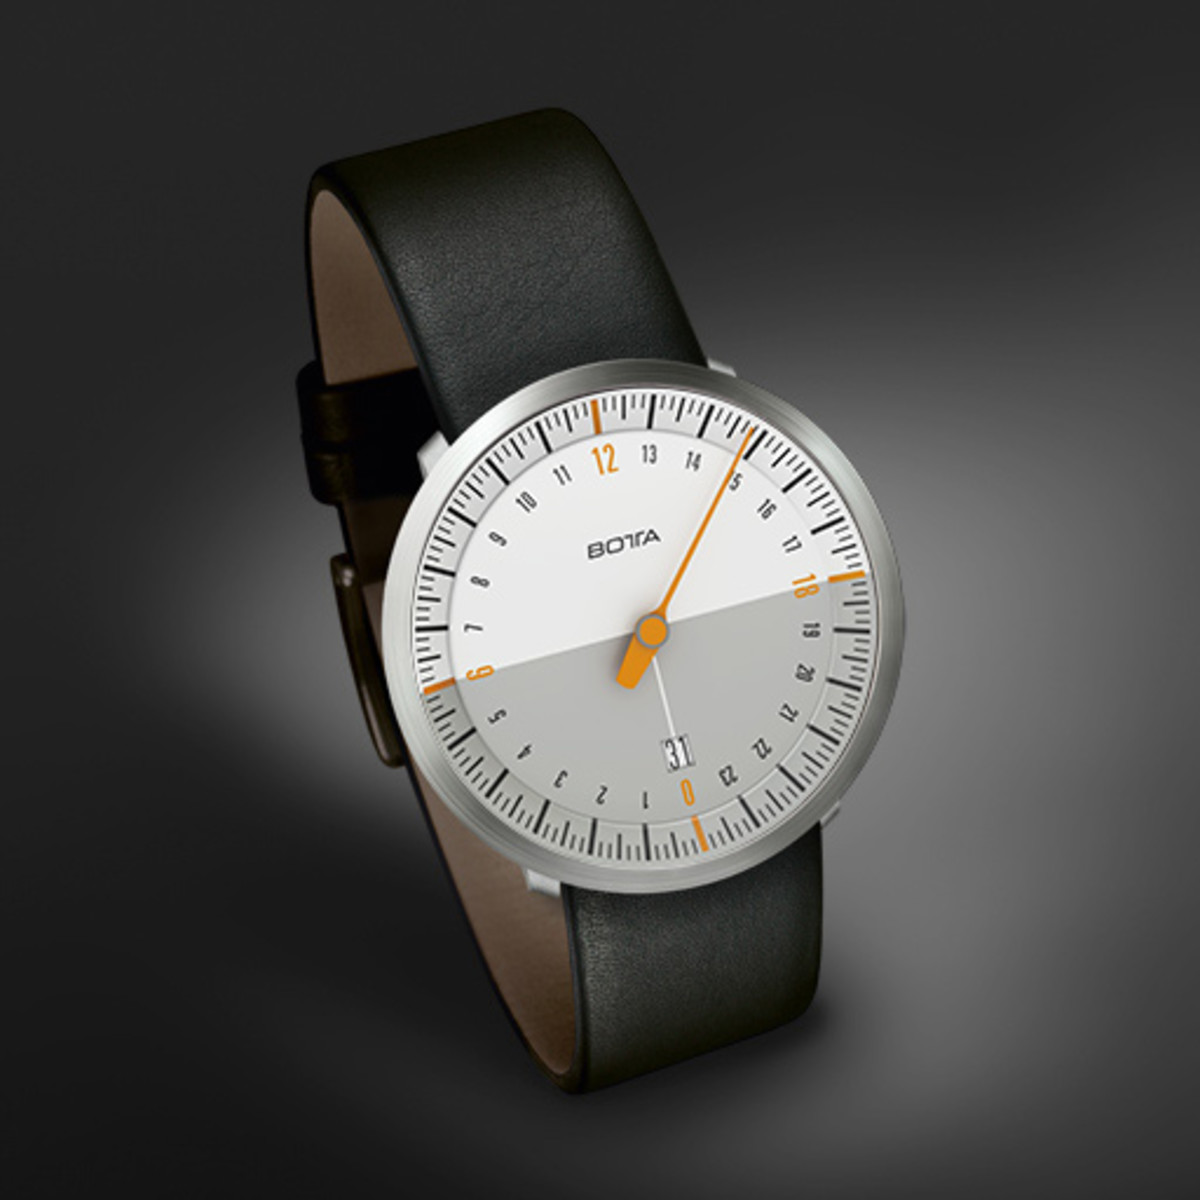 botta-design-uno-24-neo-watch-01